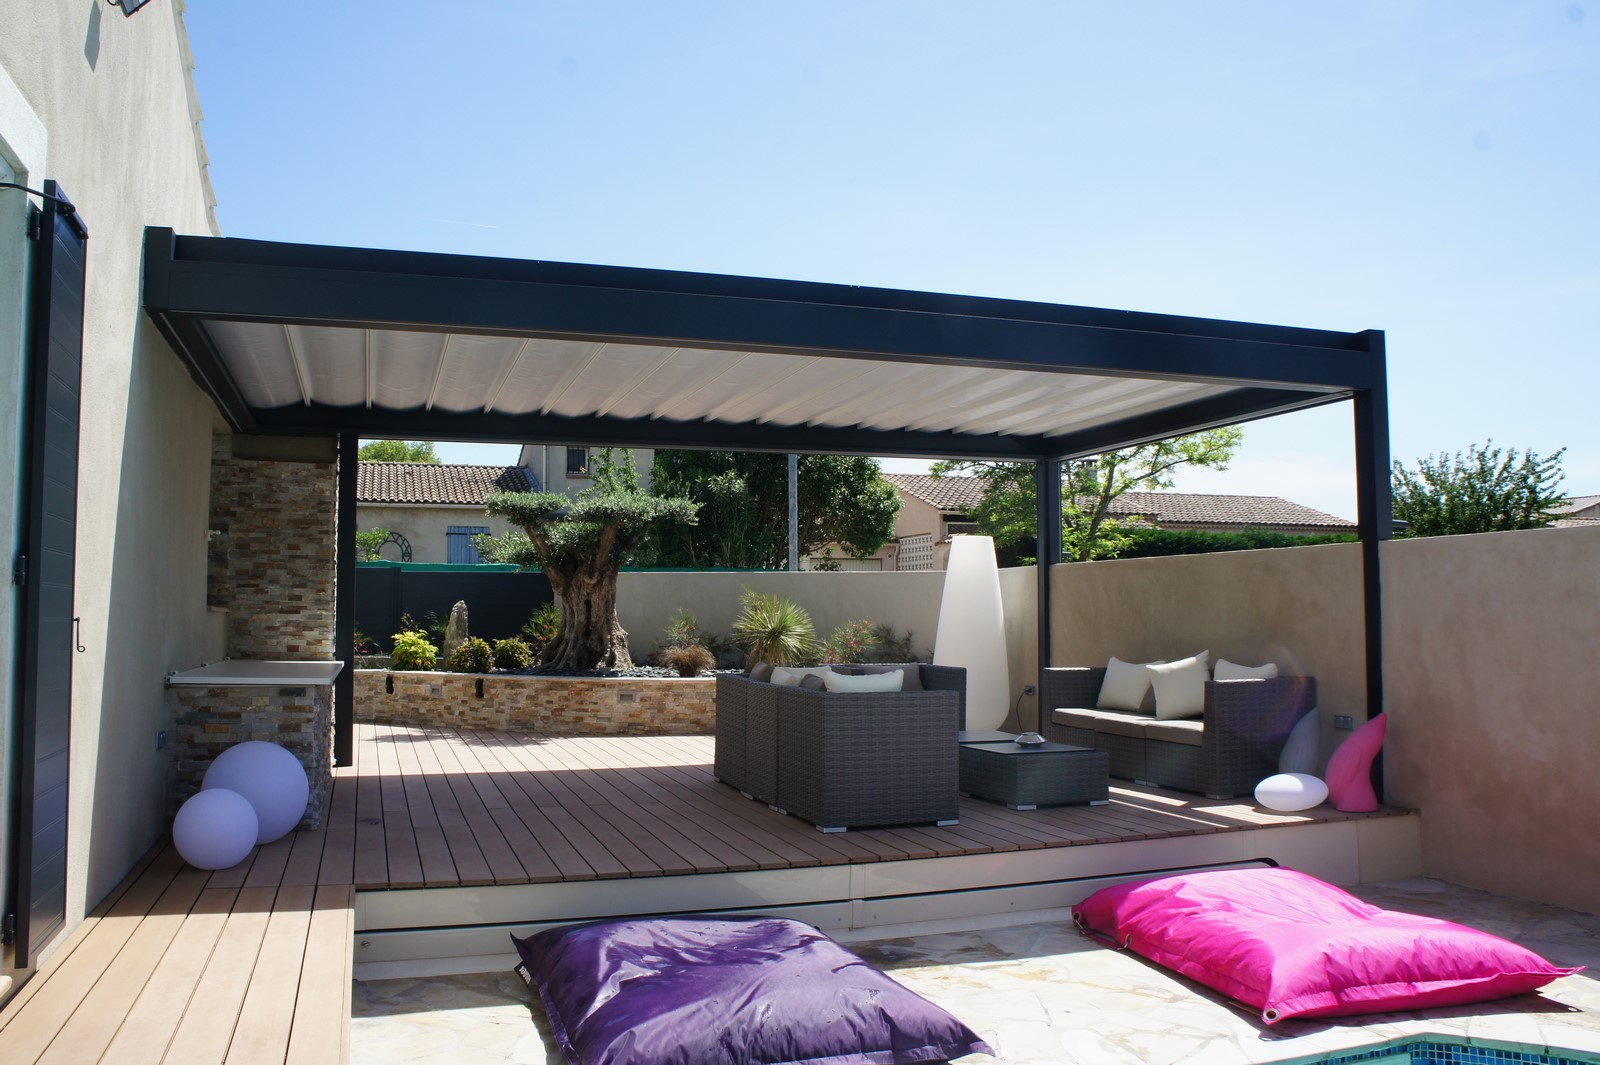 Pergola toit r tractable brustor b300 marignane for Pergola bioclimatique retractable